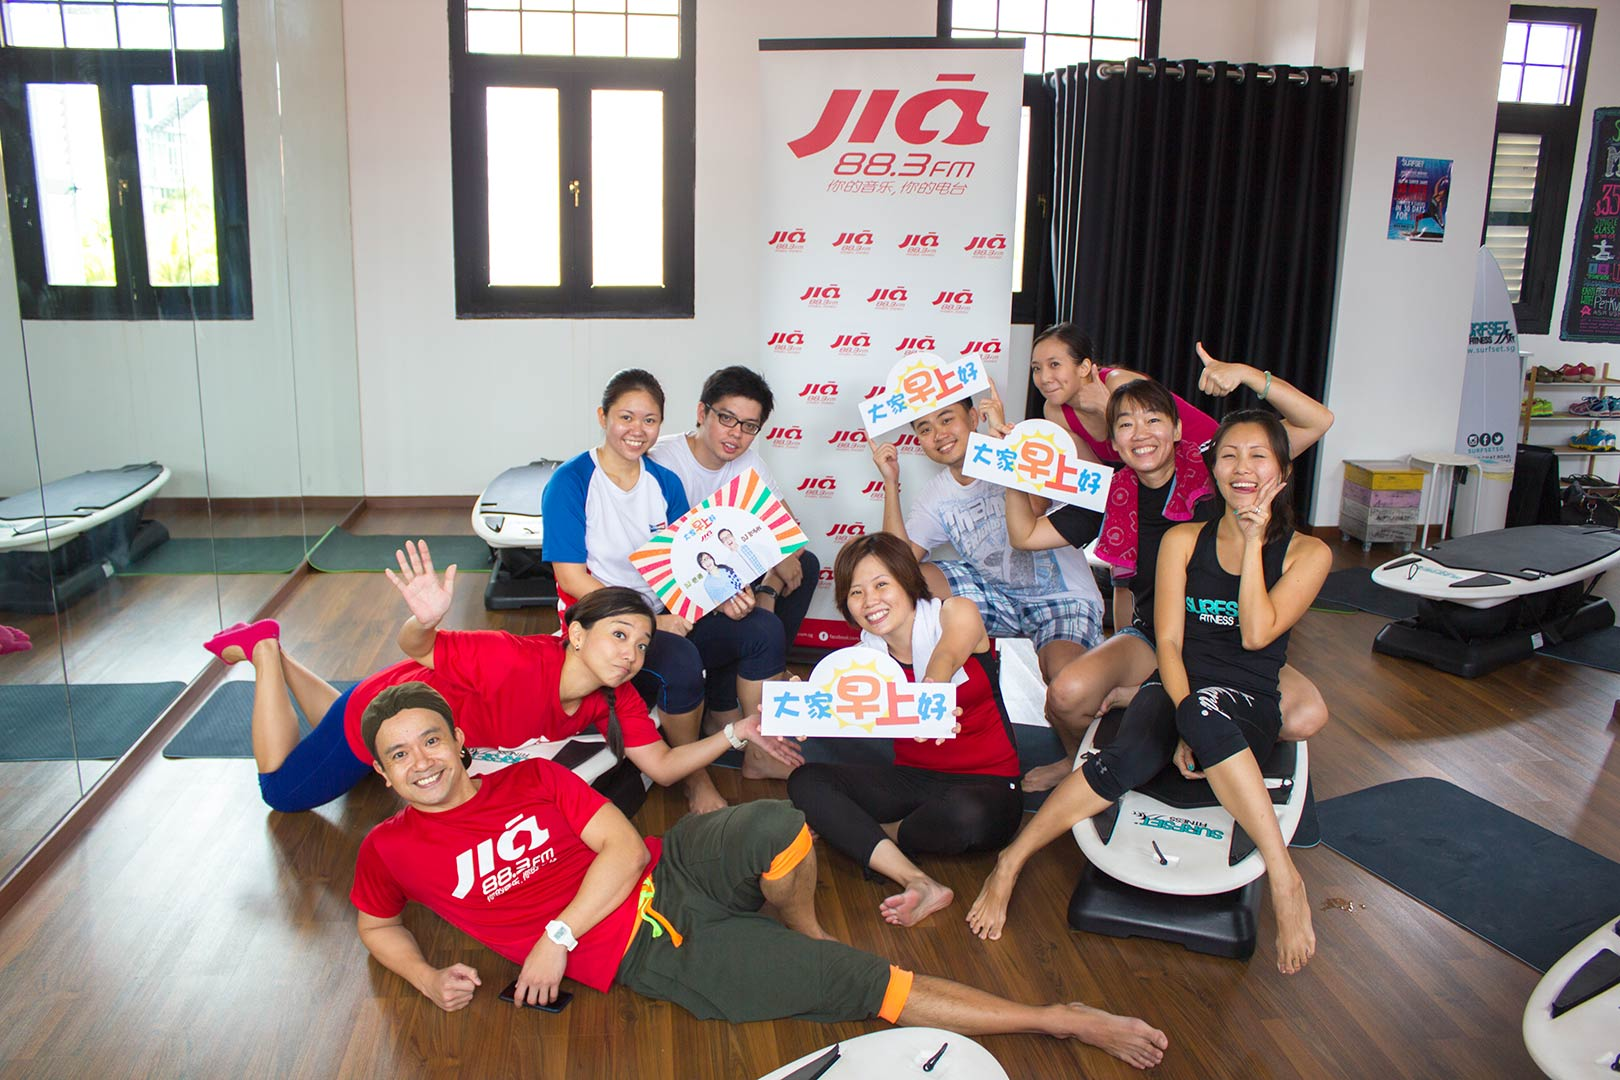 After fitness session with 883 Jia FM Good Morning Show participants